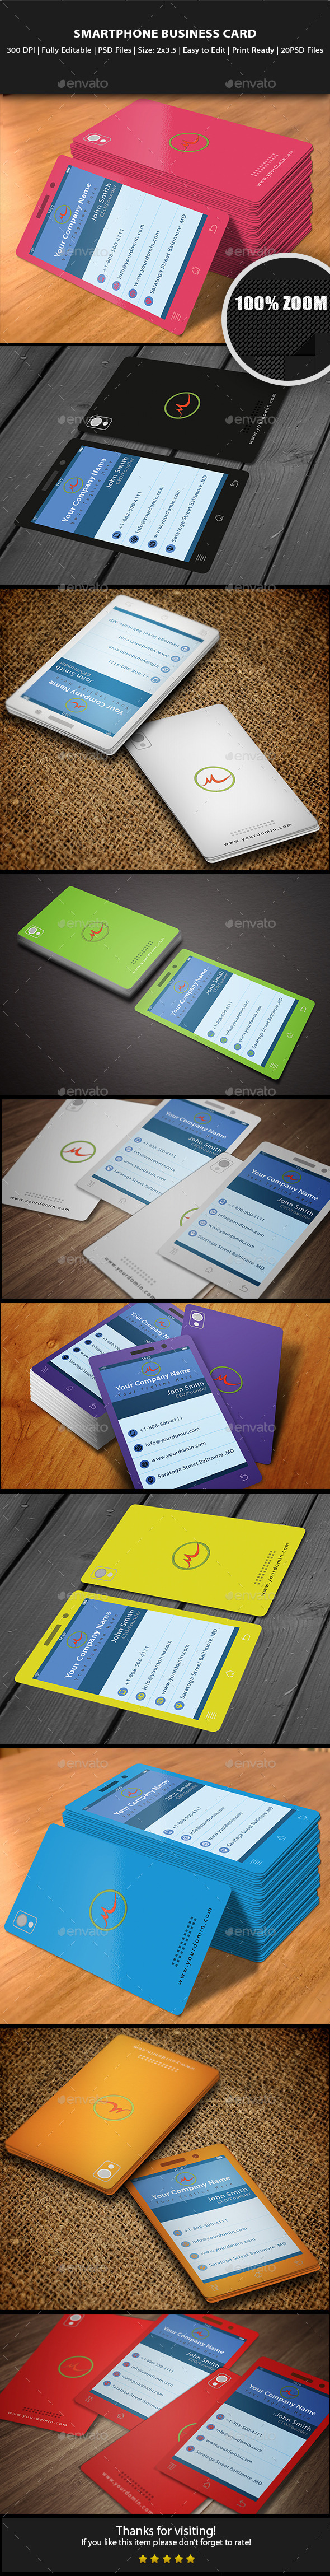 Smartphone Business Card - Creative Business Cards